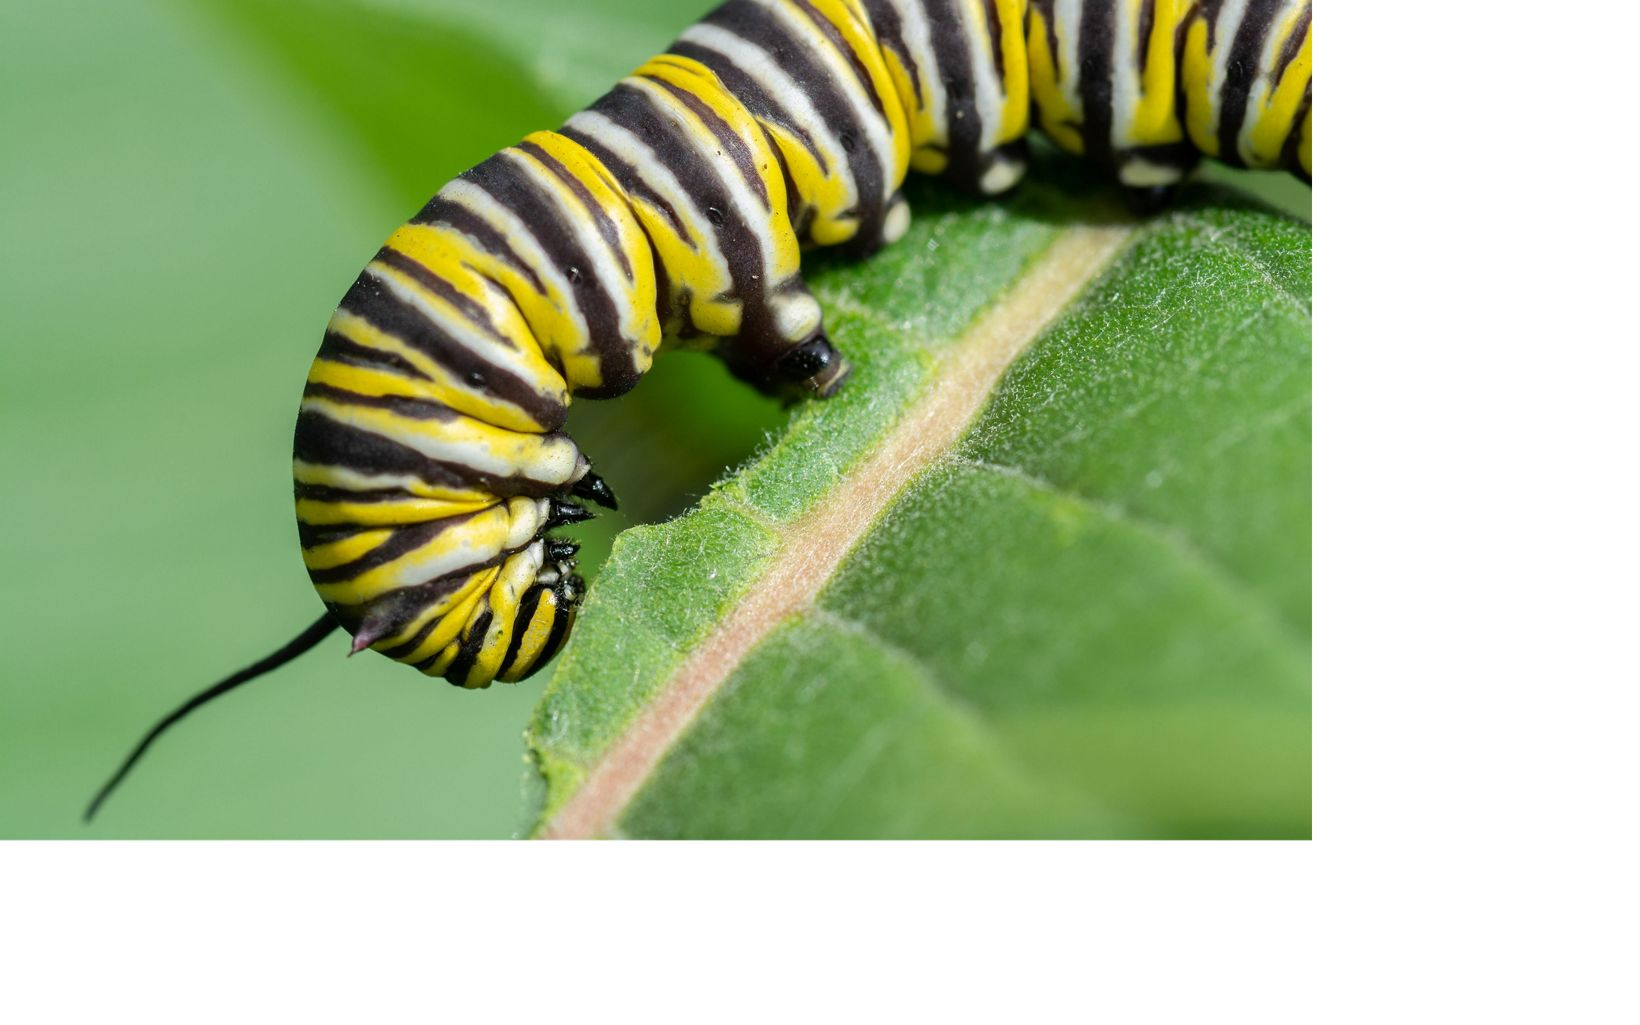 Black, white and yellow striped caterpillar feeding on green leaf.